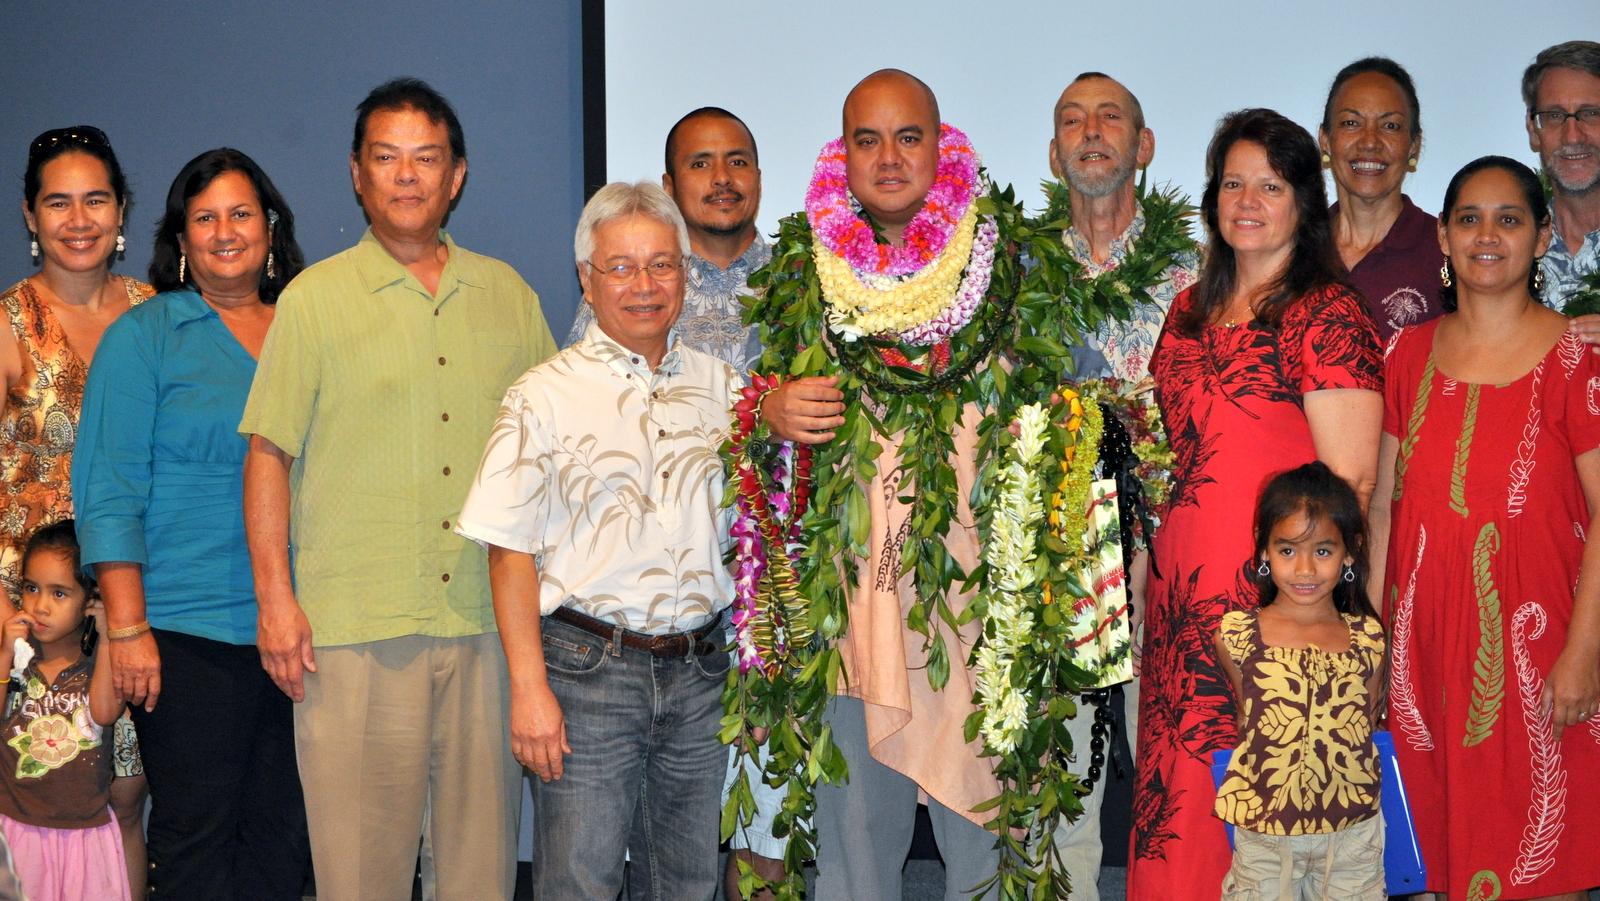 Hiapo with many lei standing with group of faculty and family.